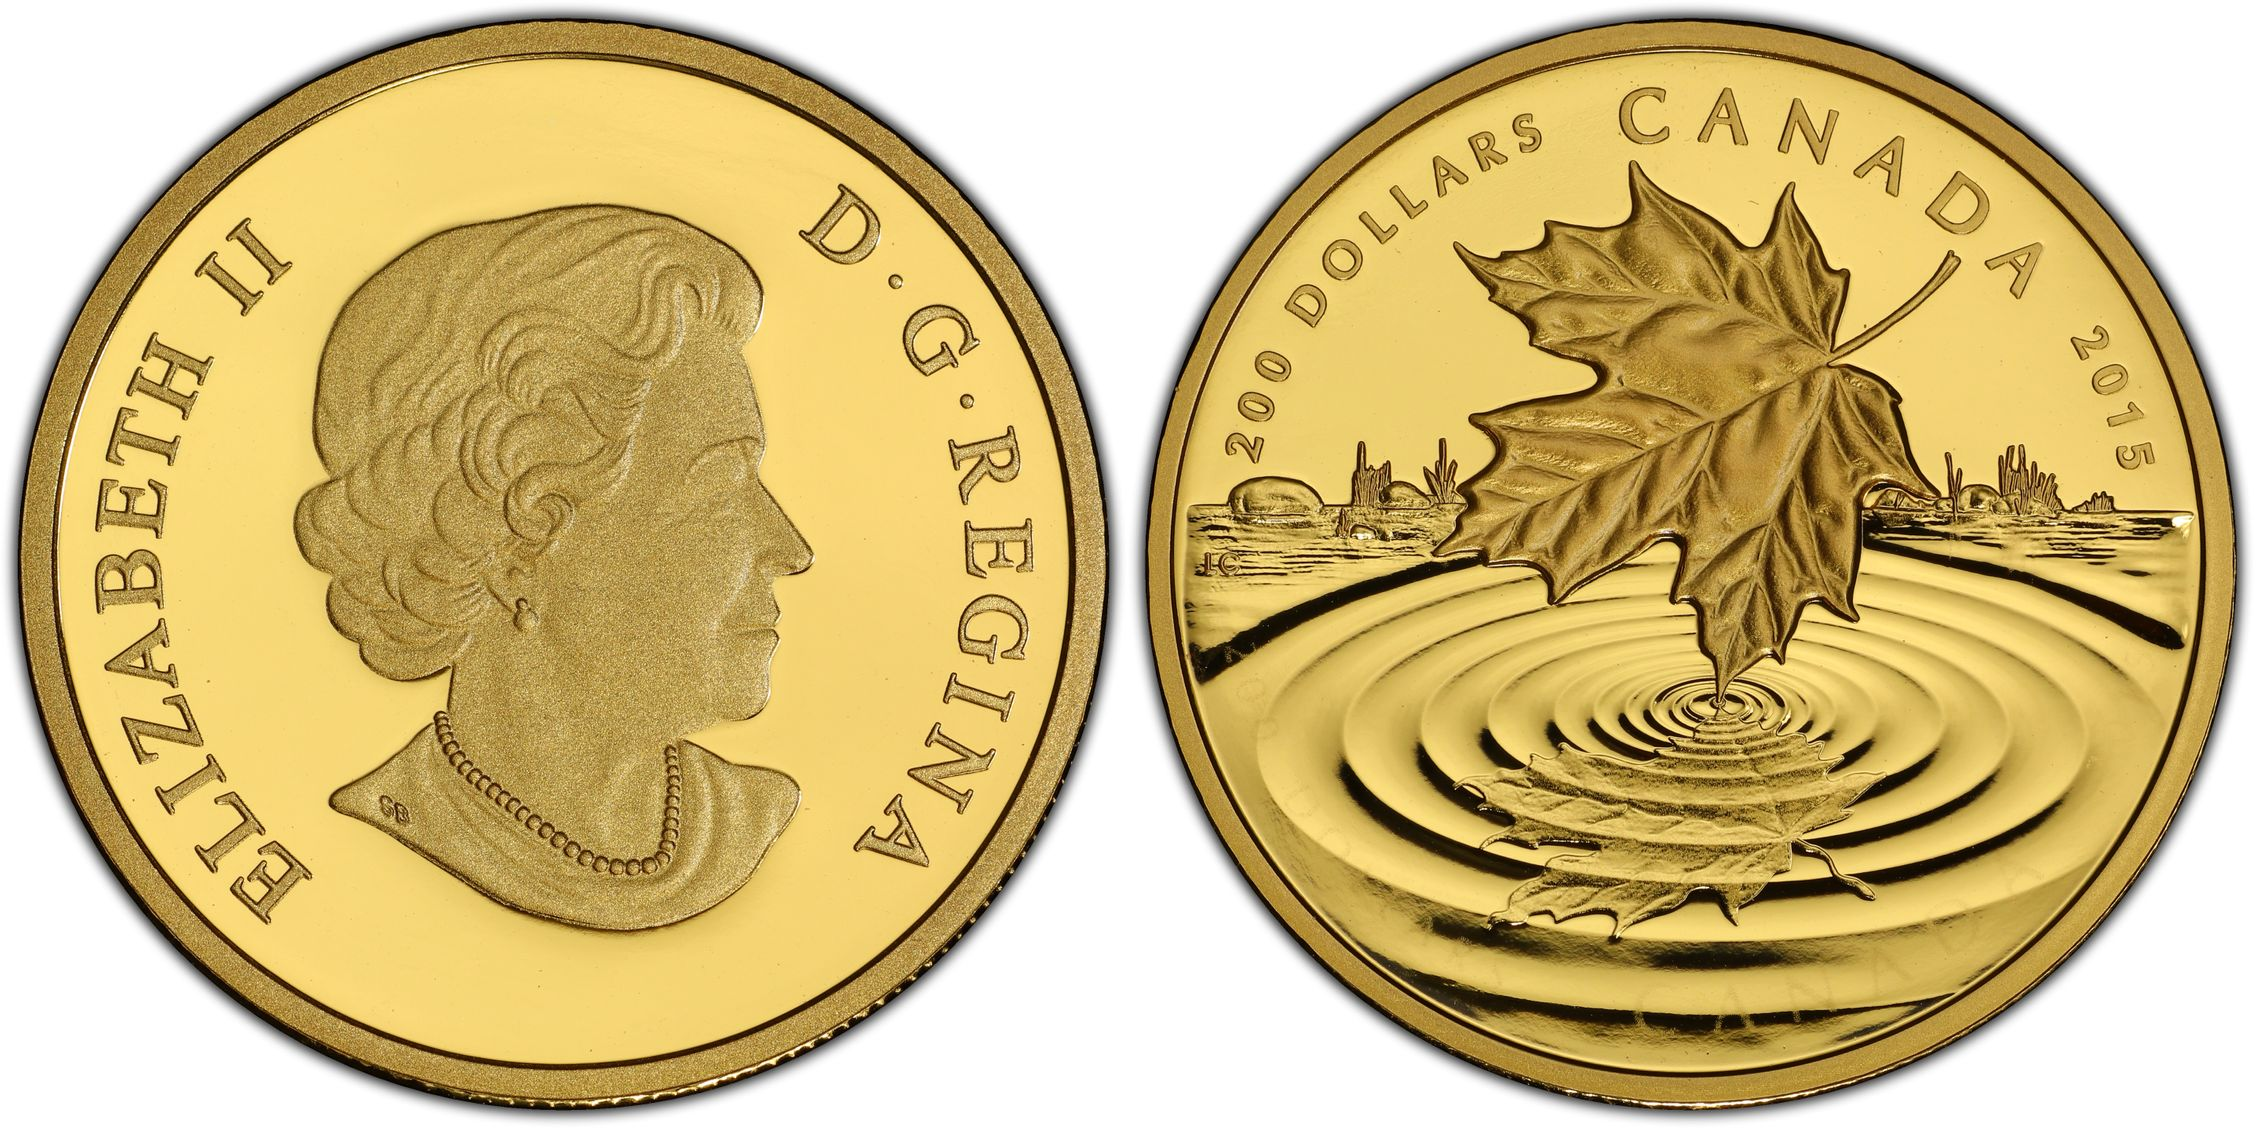 Cert 37950449 - Coin Image